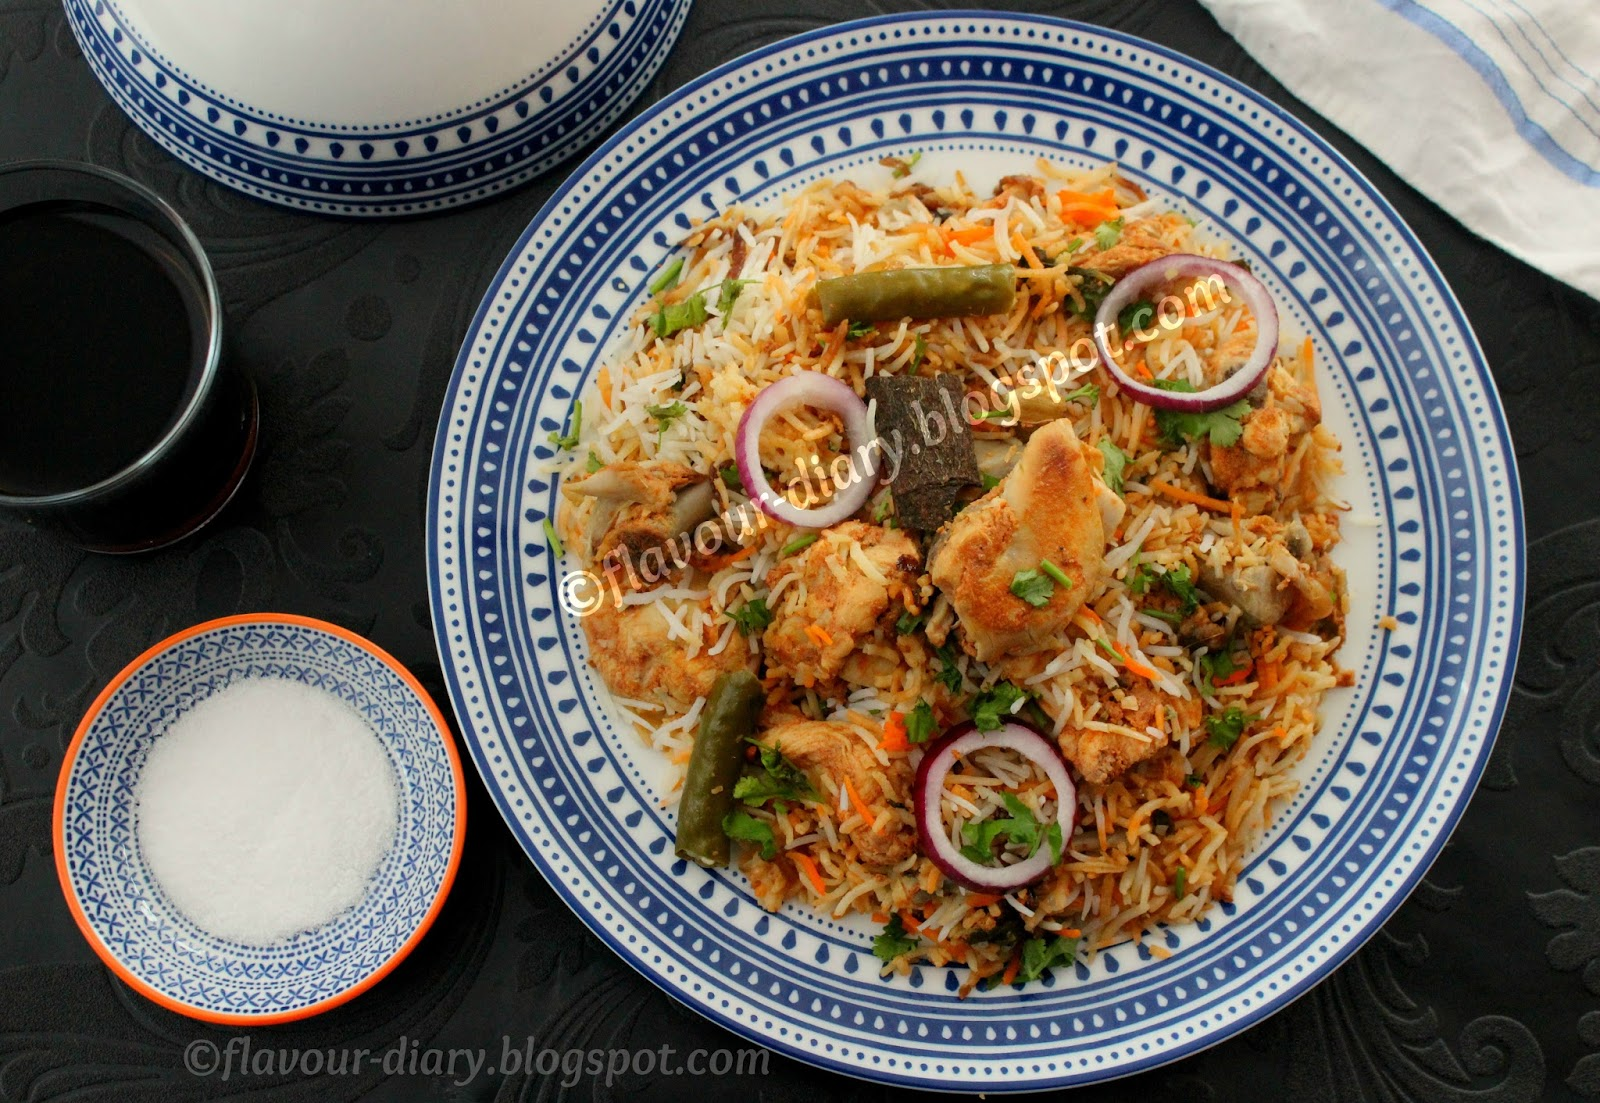 Hyderabadi chicken kachi yakhni dum Biryani